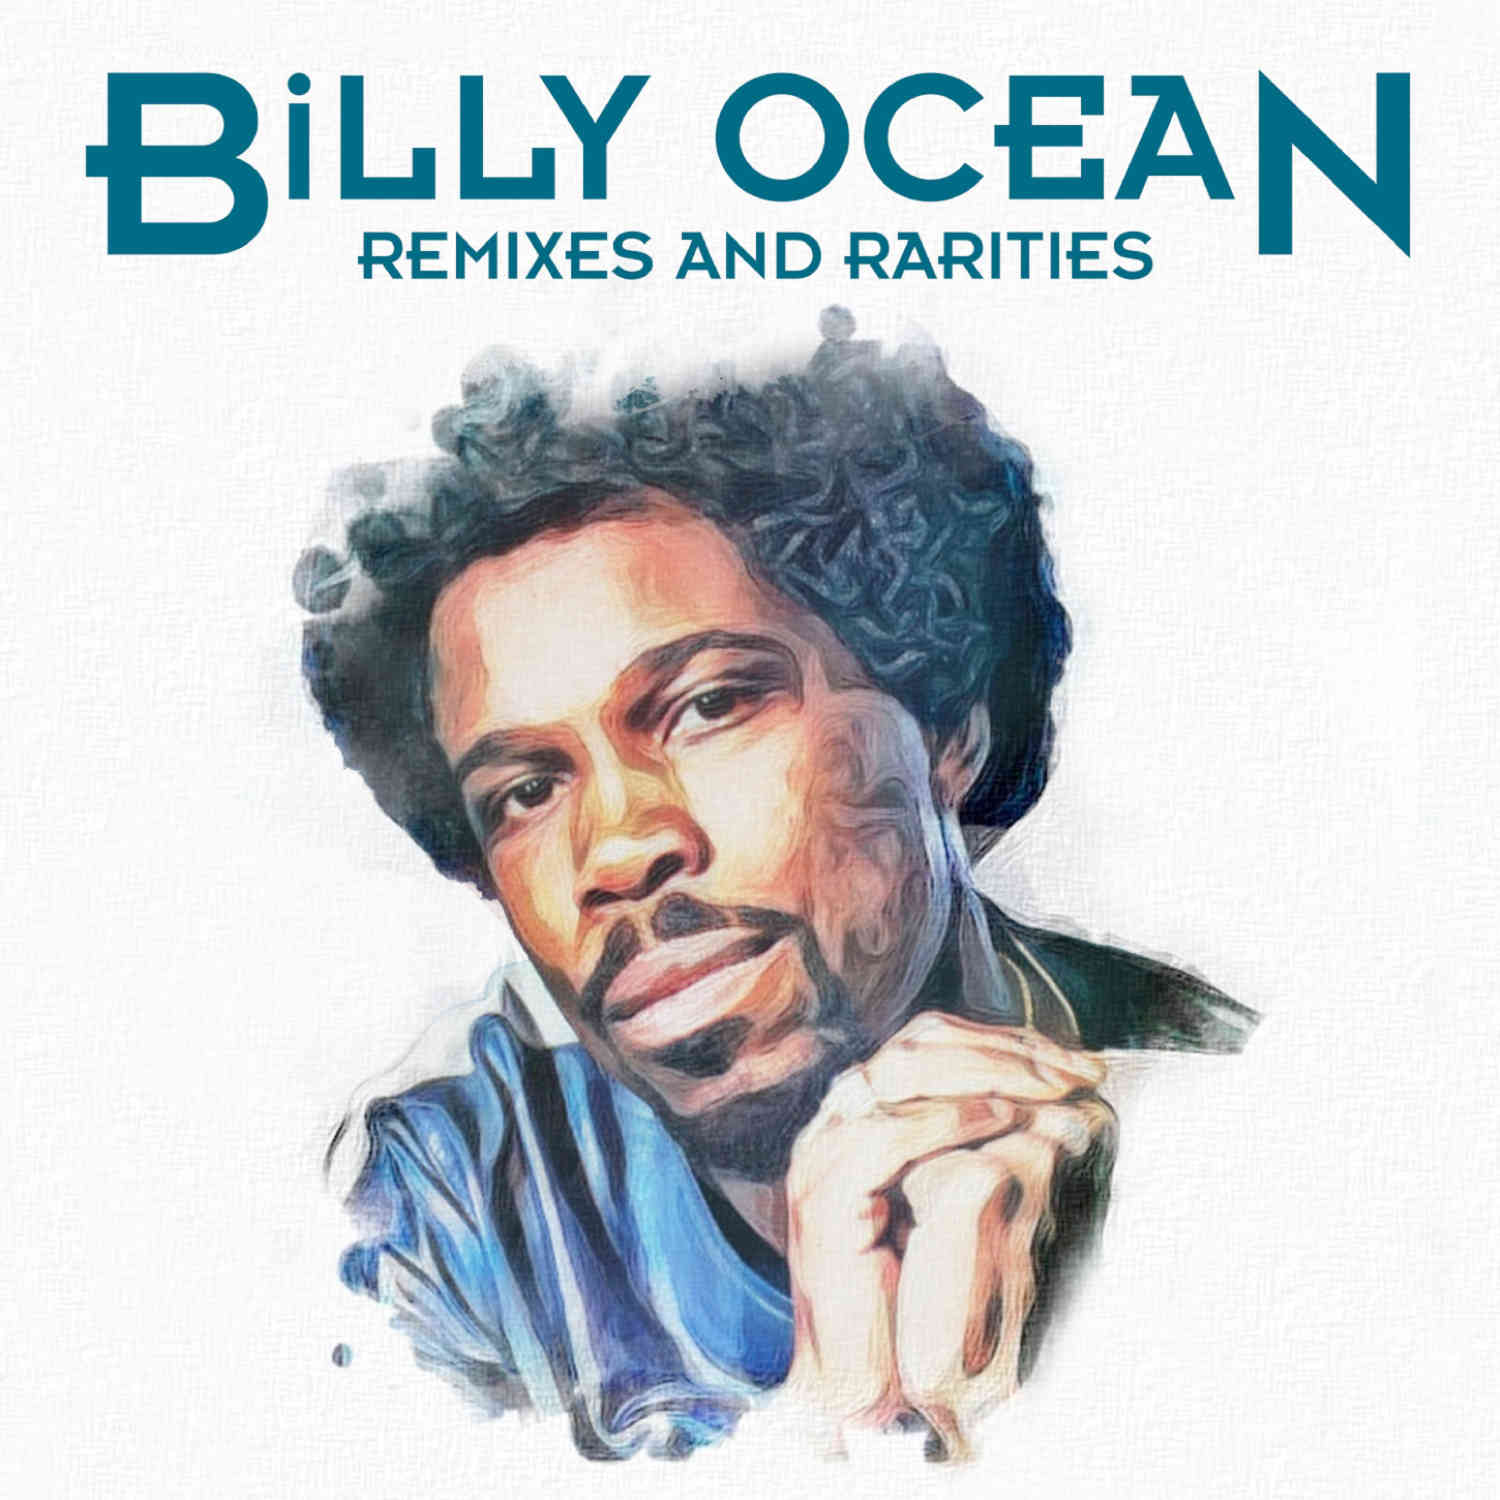 Billy Ocean | The Remixes and Rarities double CD is announced for